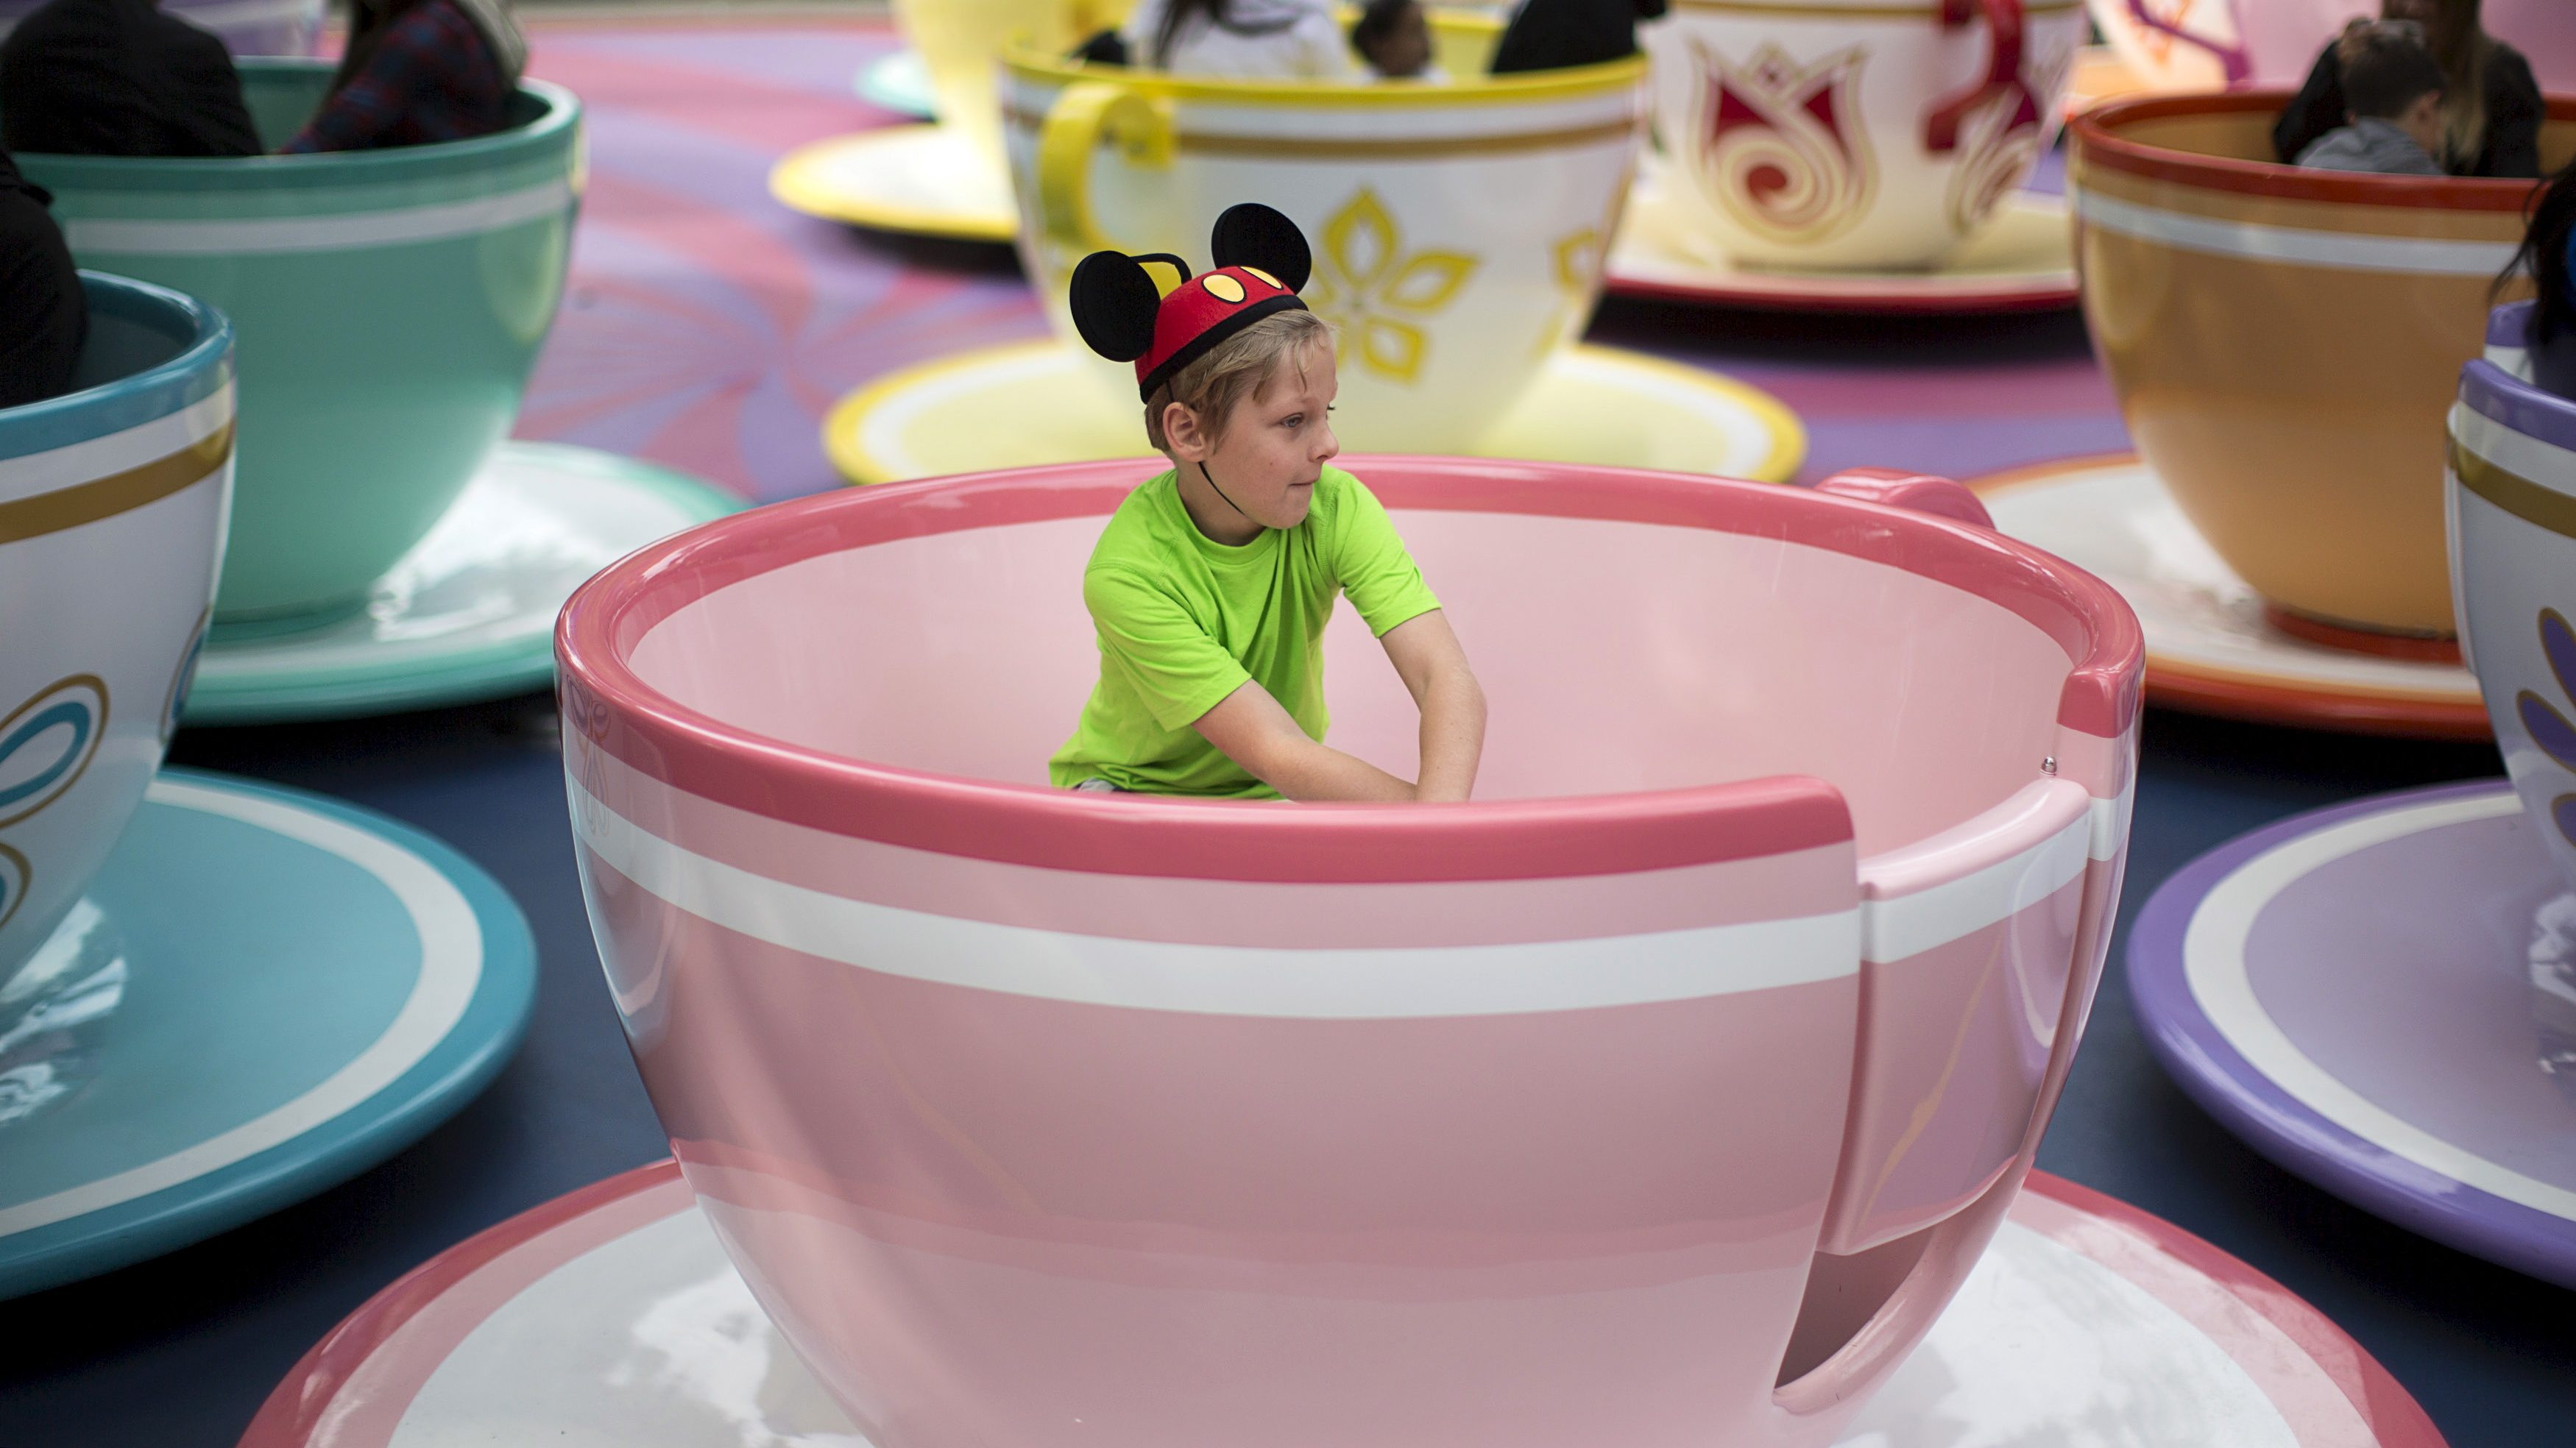 A young boy wearing a Mickey ears hat and a lime green t-shirt sits in the middle of a large tea cup and saucer on the Tea Party ride in this file photo of the Disneyland theme park in California.